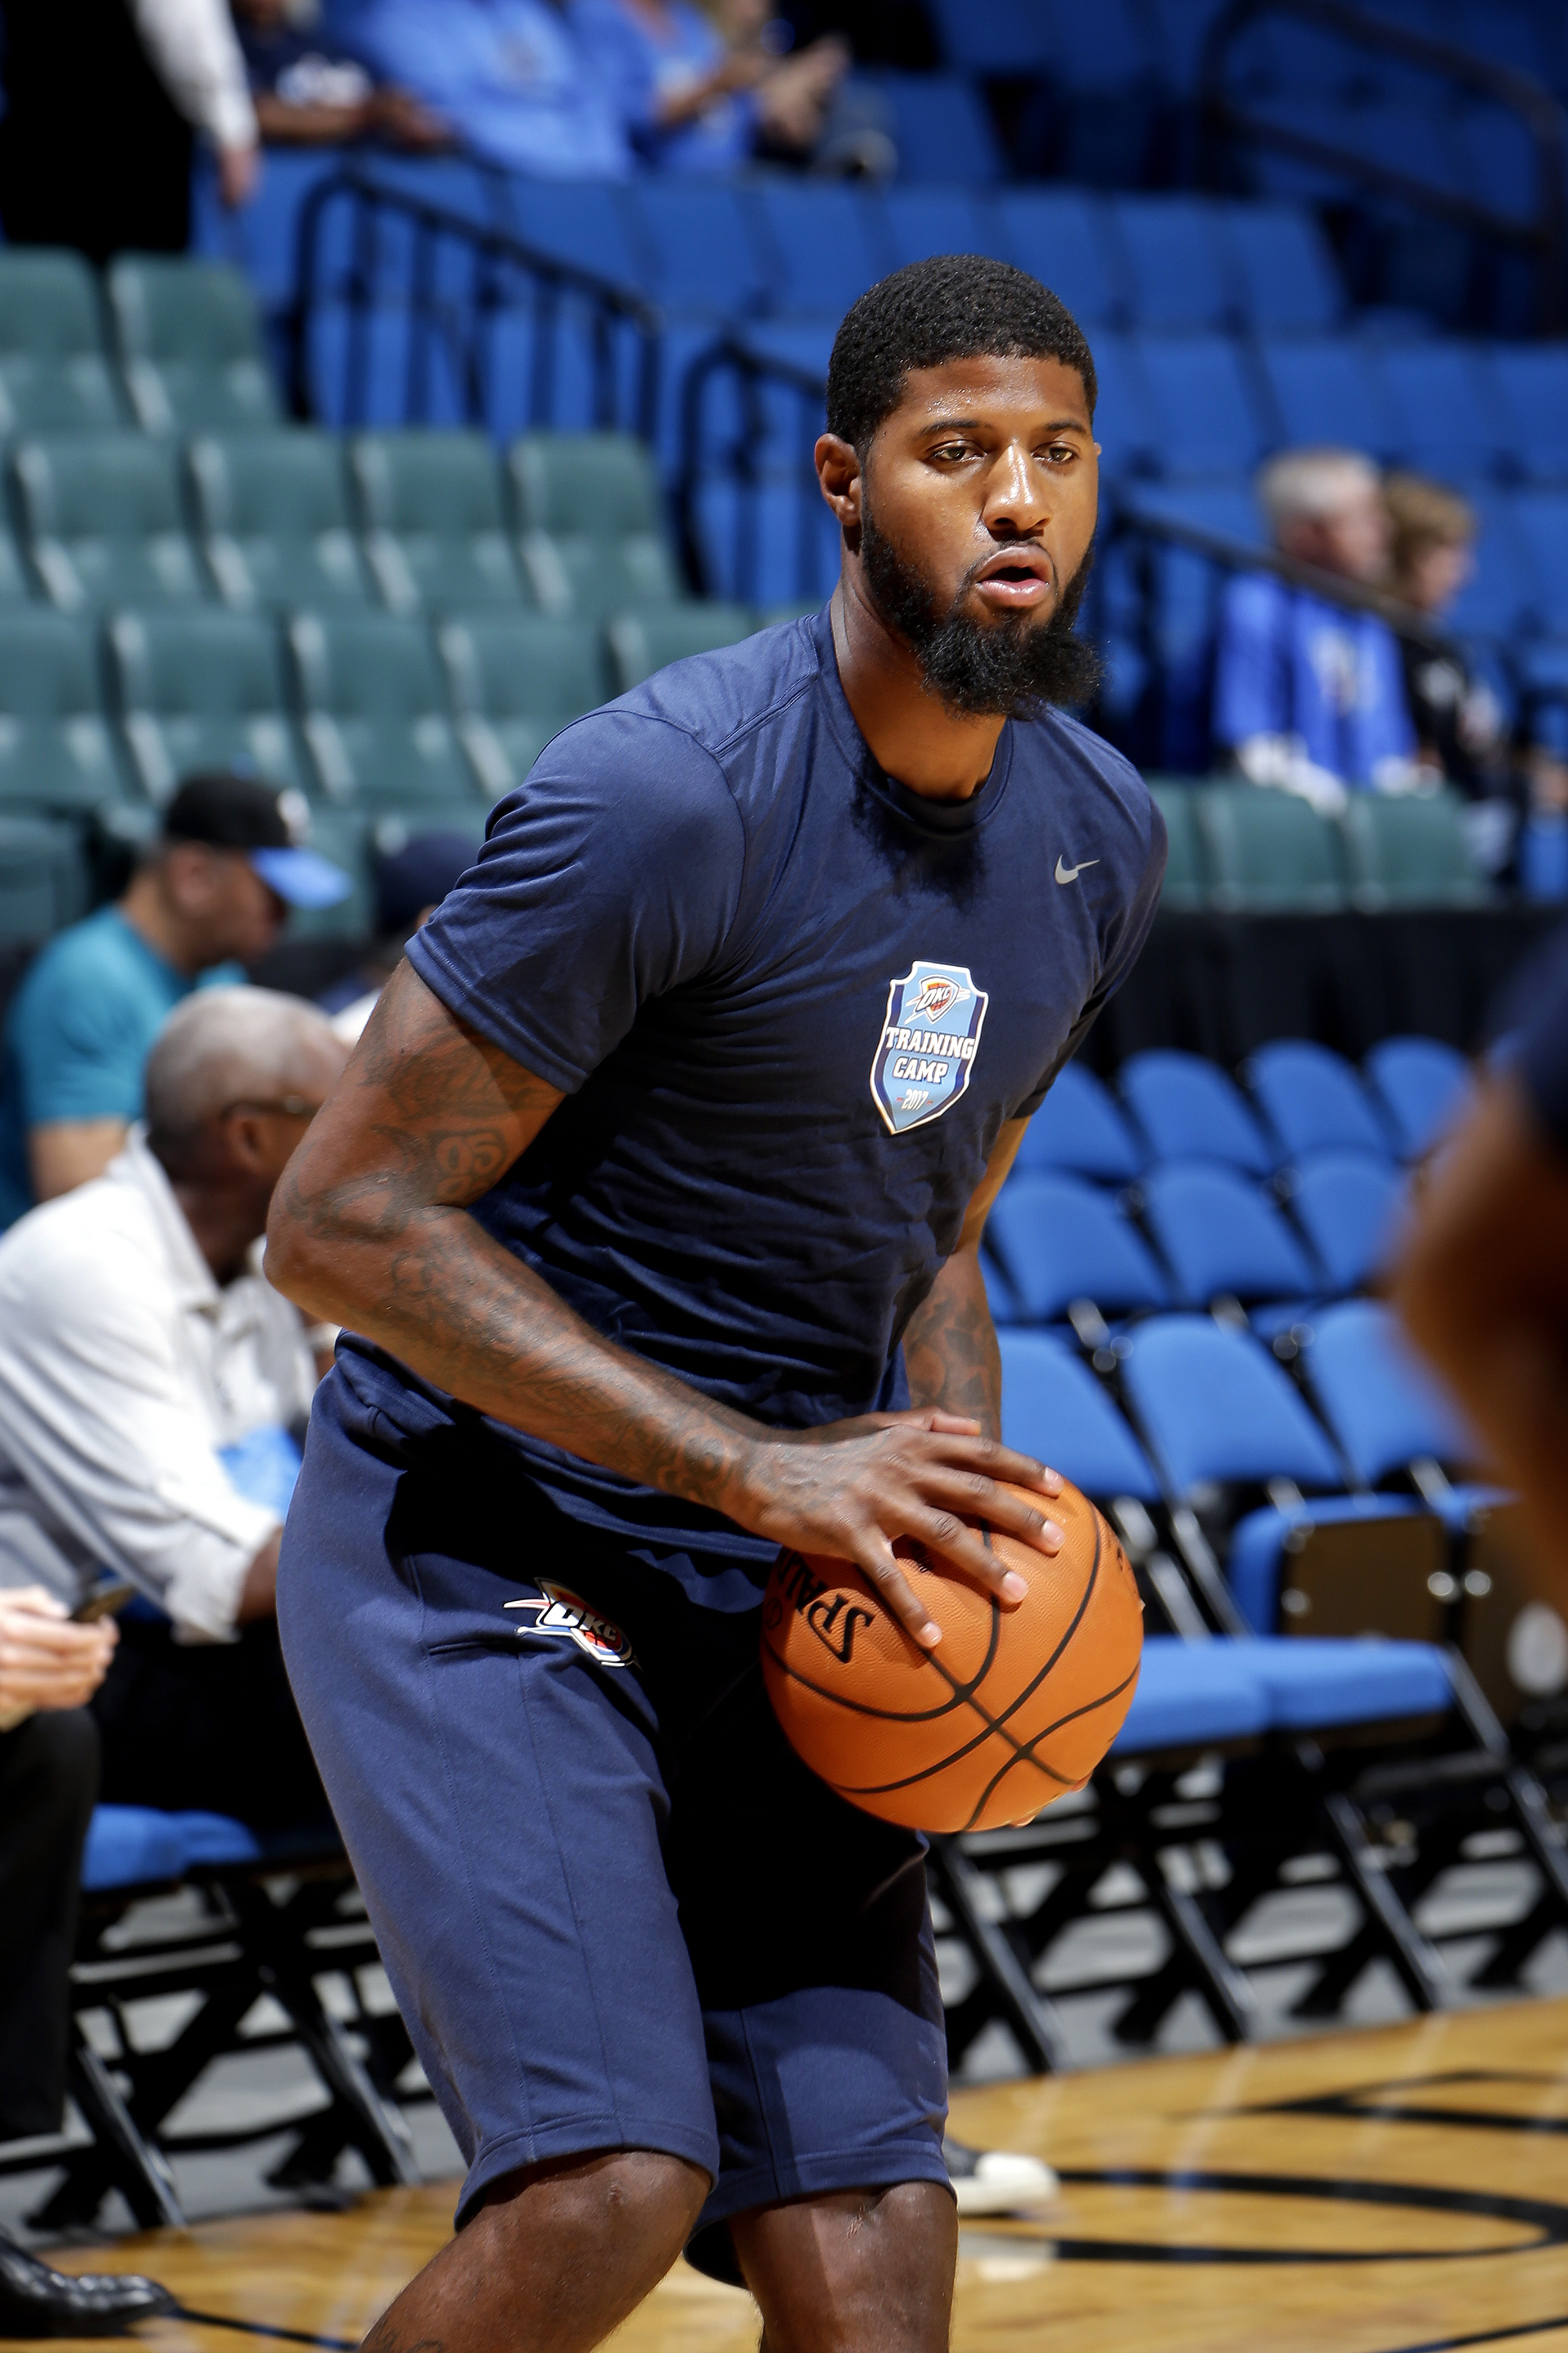 e4457b20c59 Morning Tip Mailbag: Your questions on Paul George's future, the Draft and  more | NBA.com